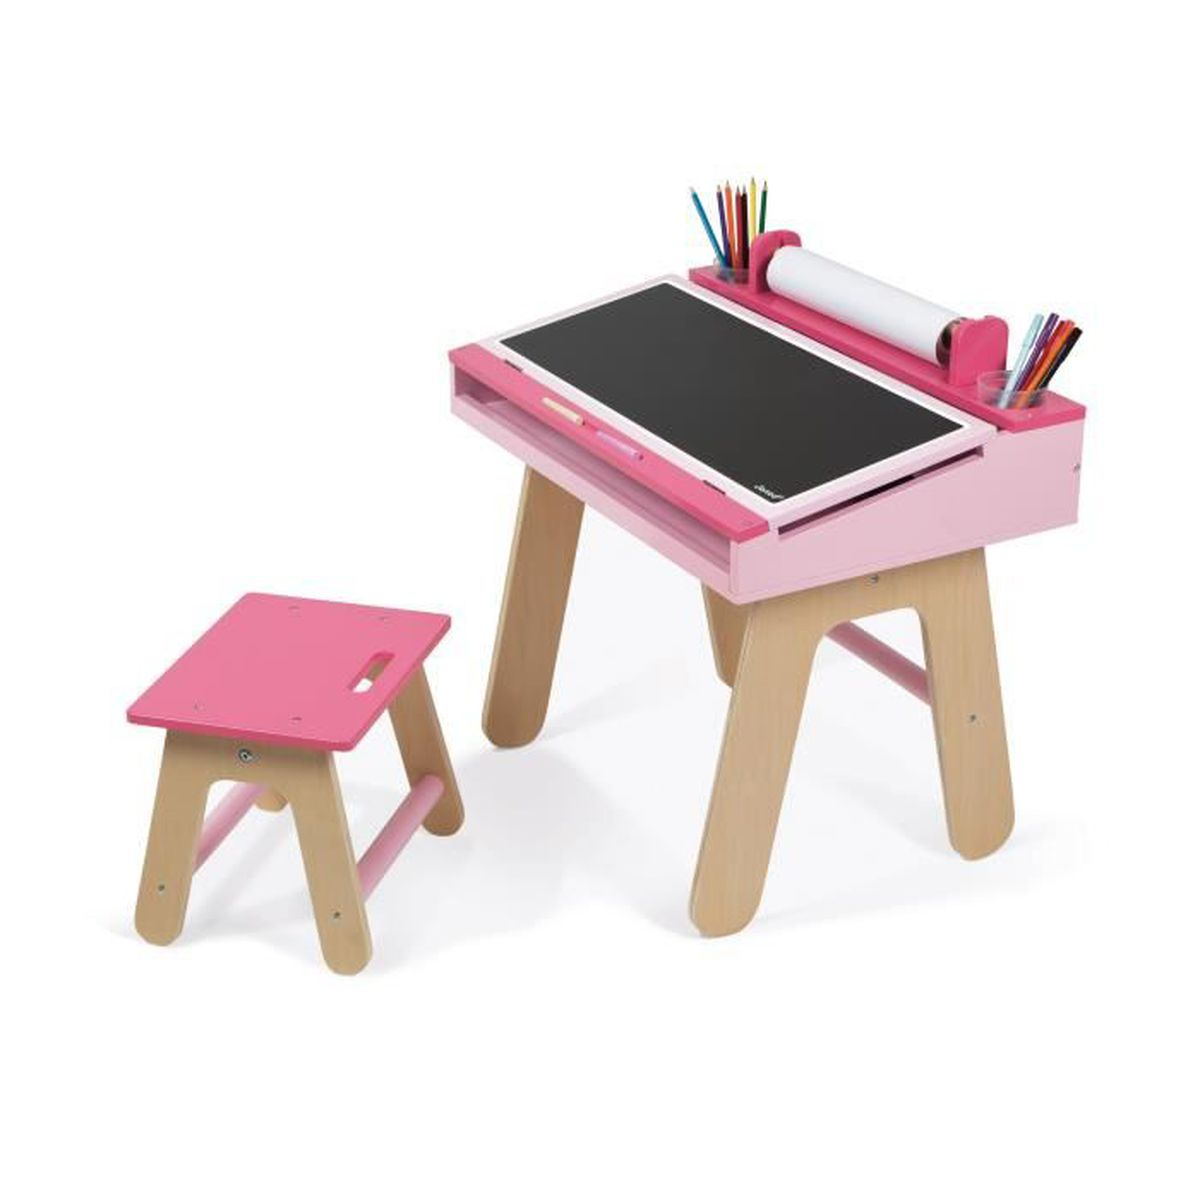 tosca kid bureau d 39 colier en bois rose pour enfant achat vente bureau b b enfant les. Black Bedroom Furniture Sets. Home Design Ideas